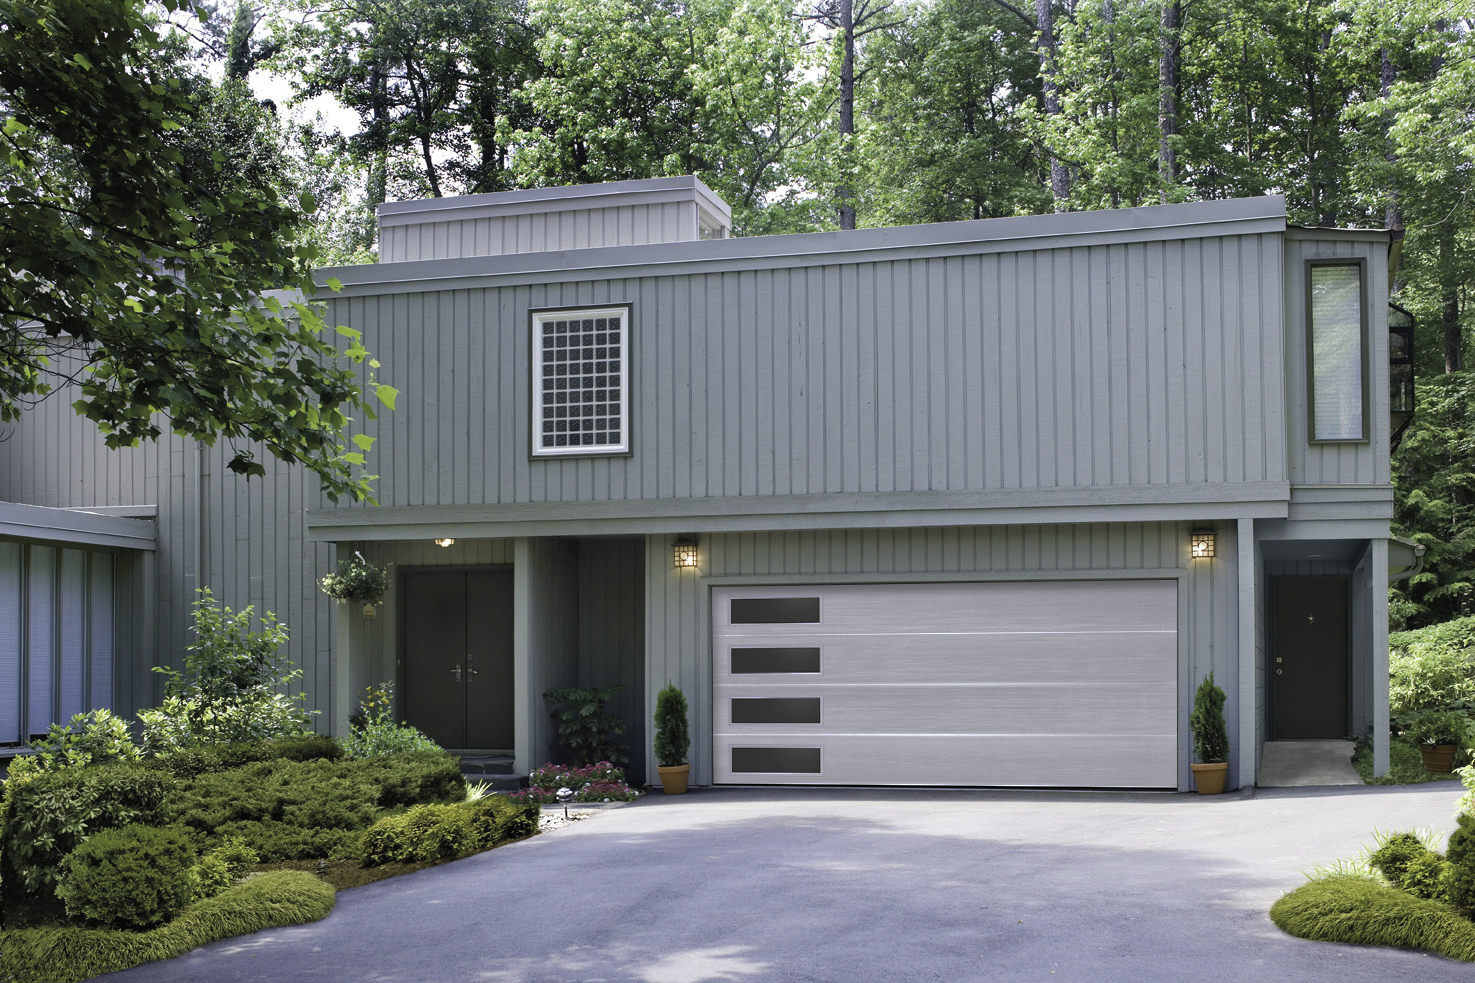 rwgaragedoorsca inc twitter replies rw garage likes doors retweets